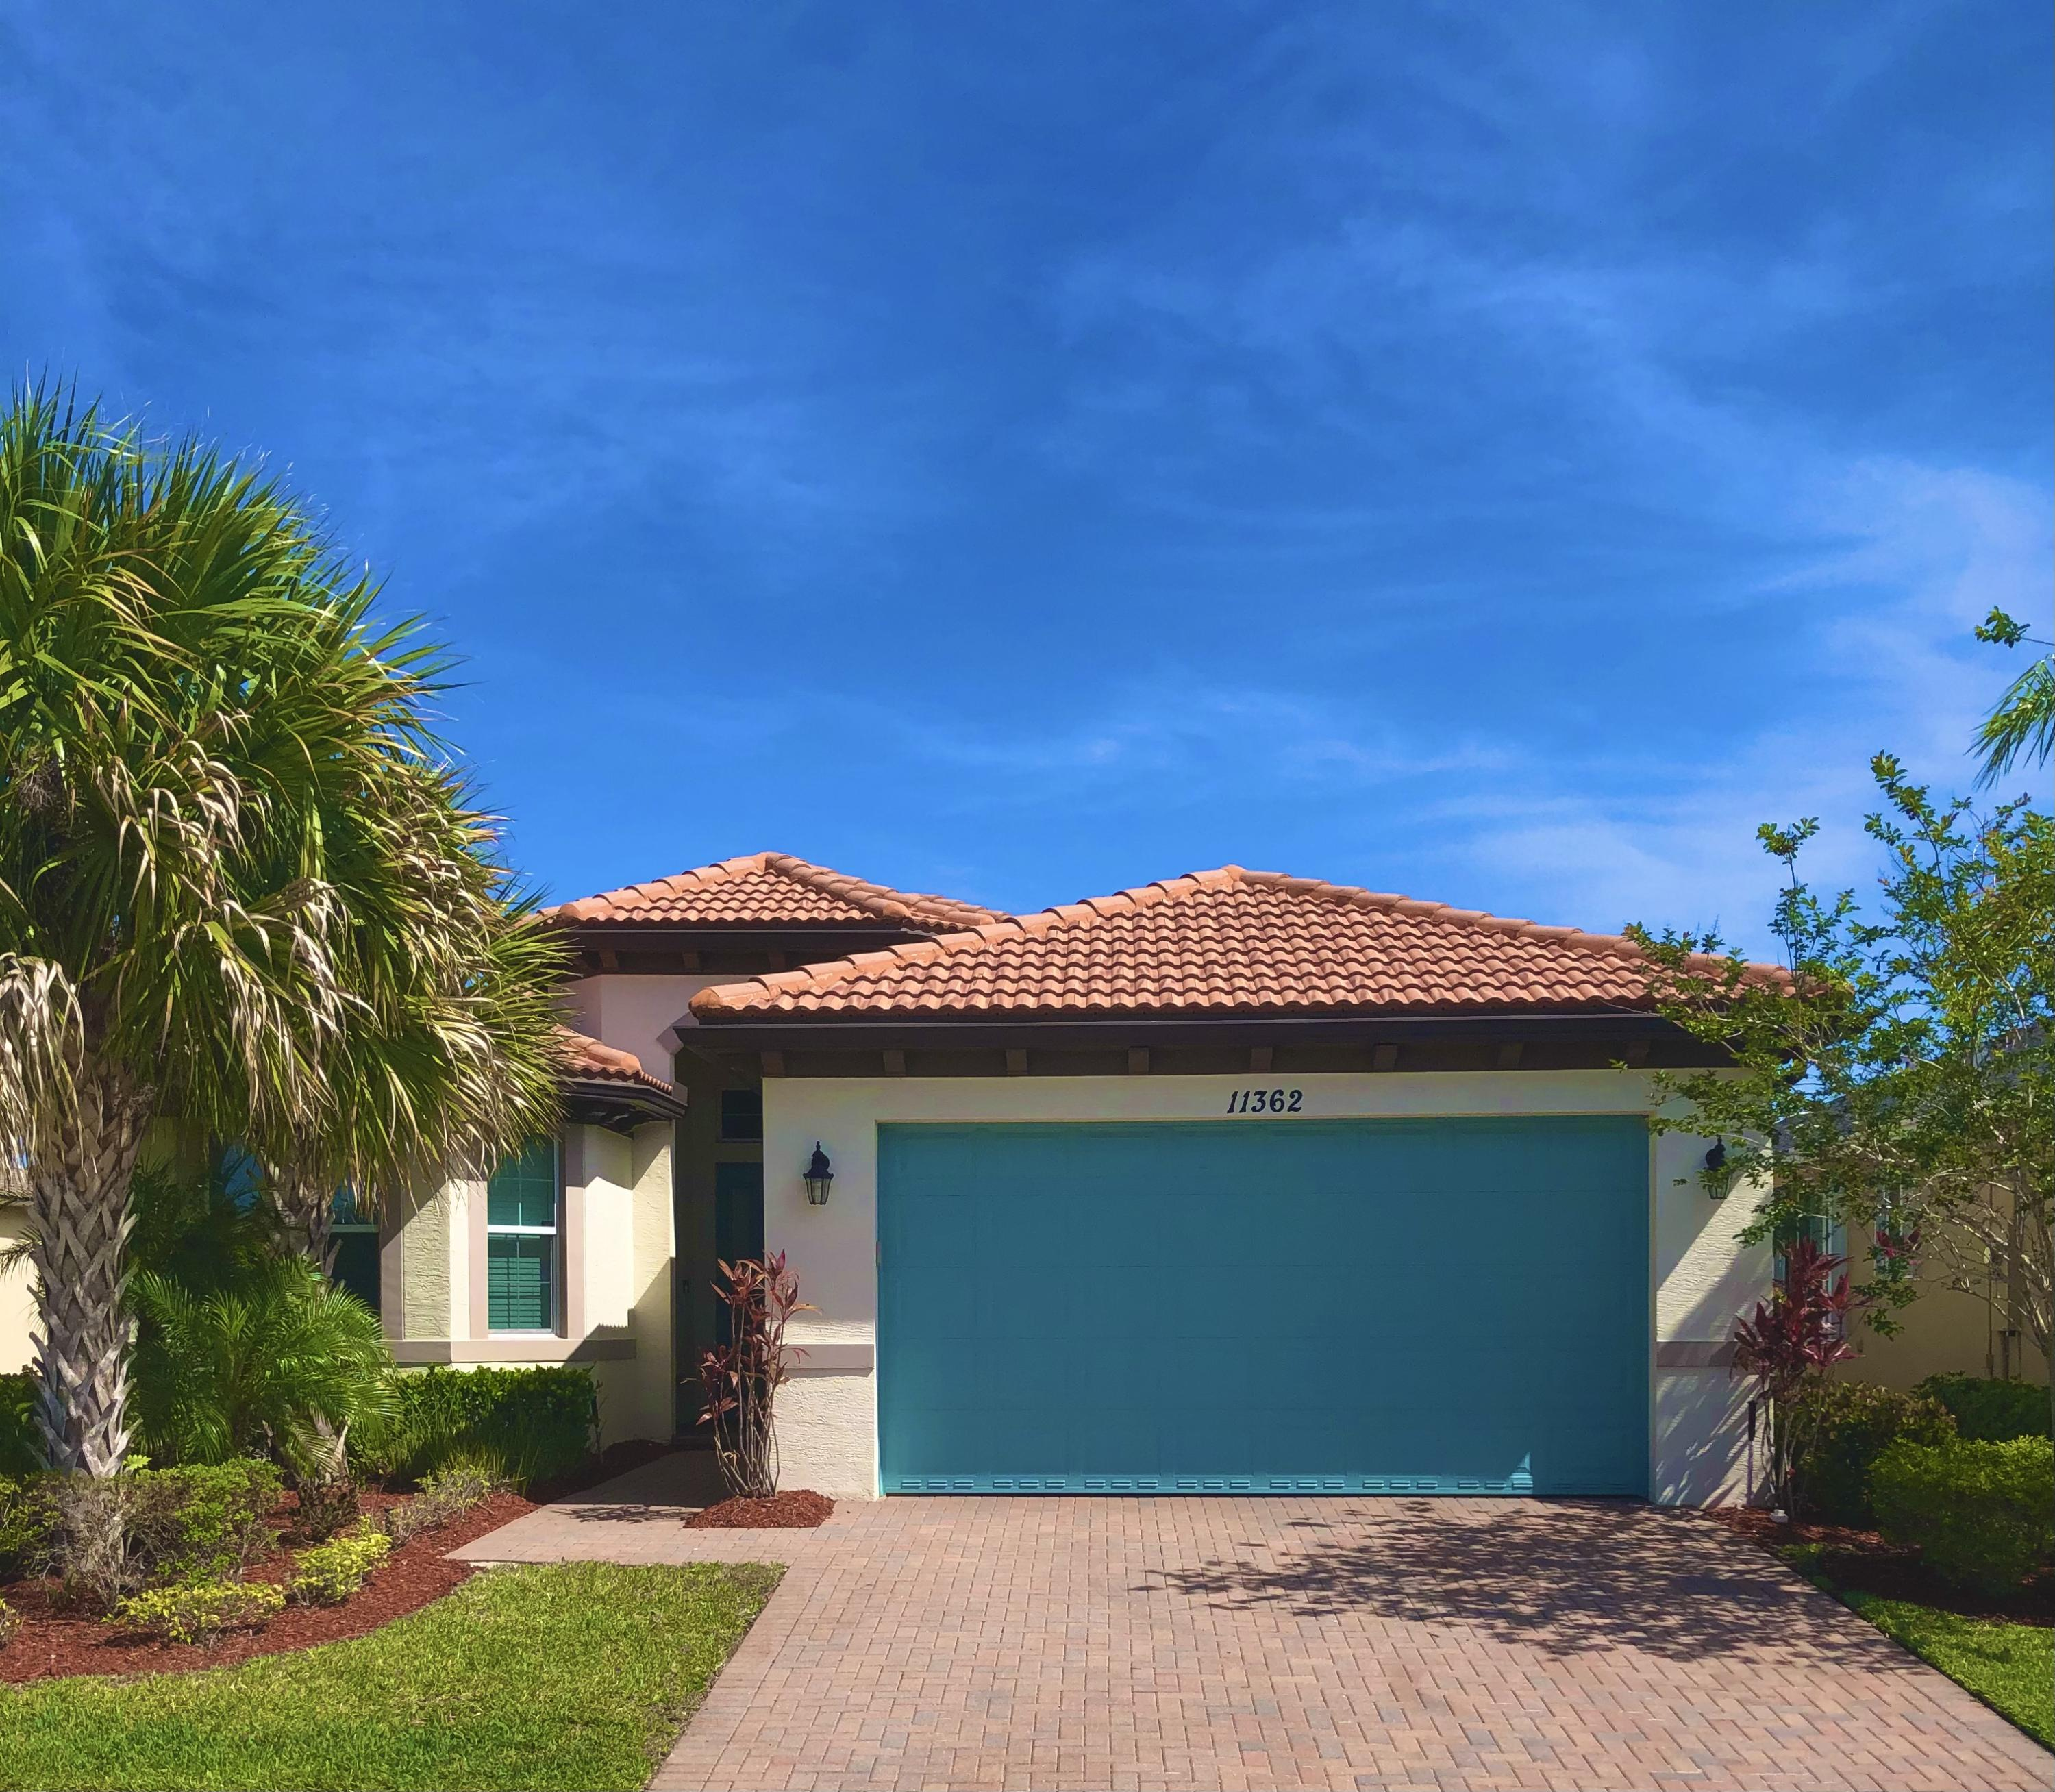 11362 SW Wyndham Way, Port Saint Lucie FL 34987